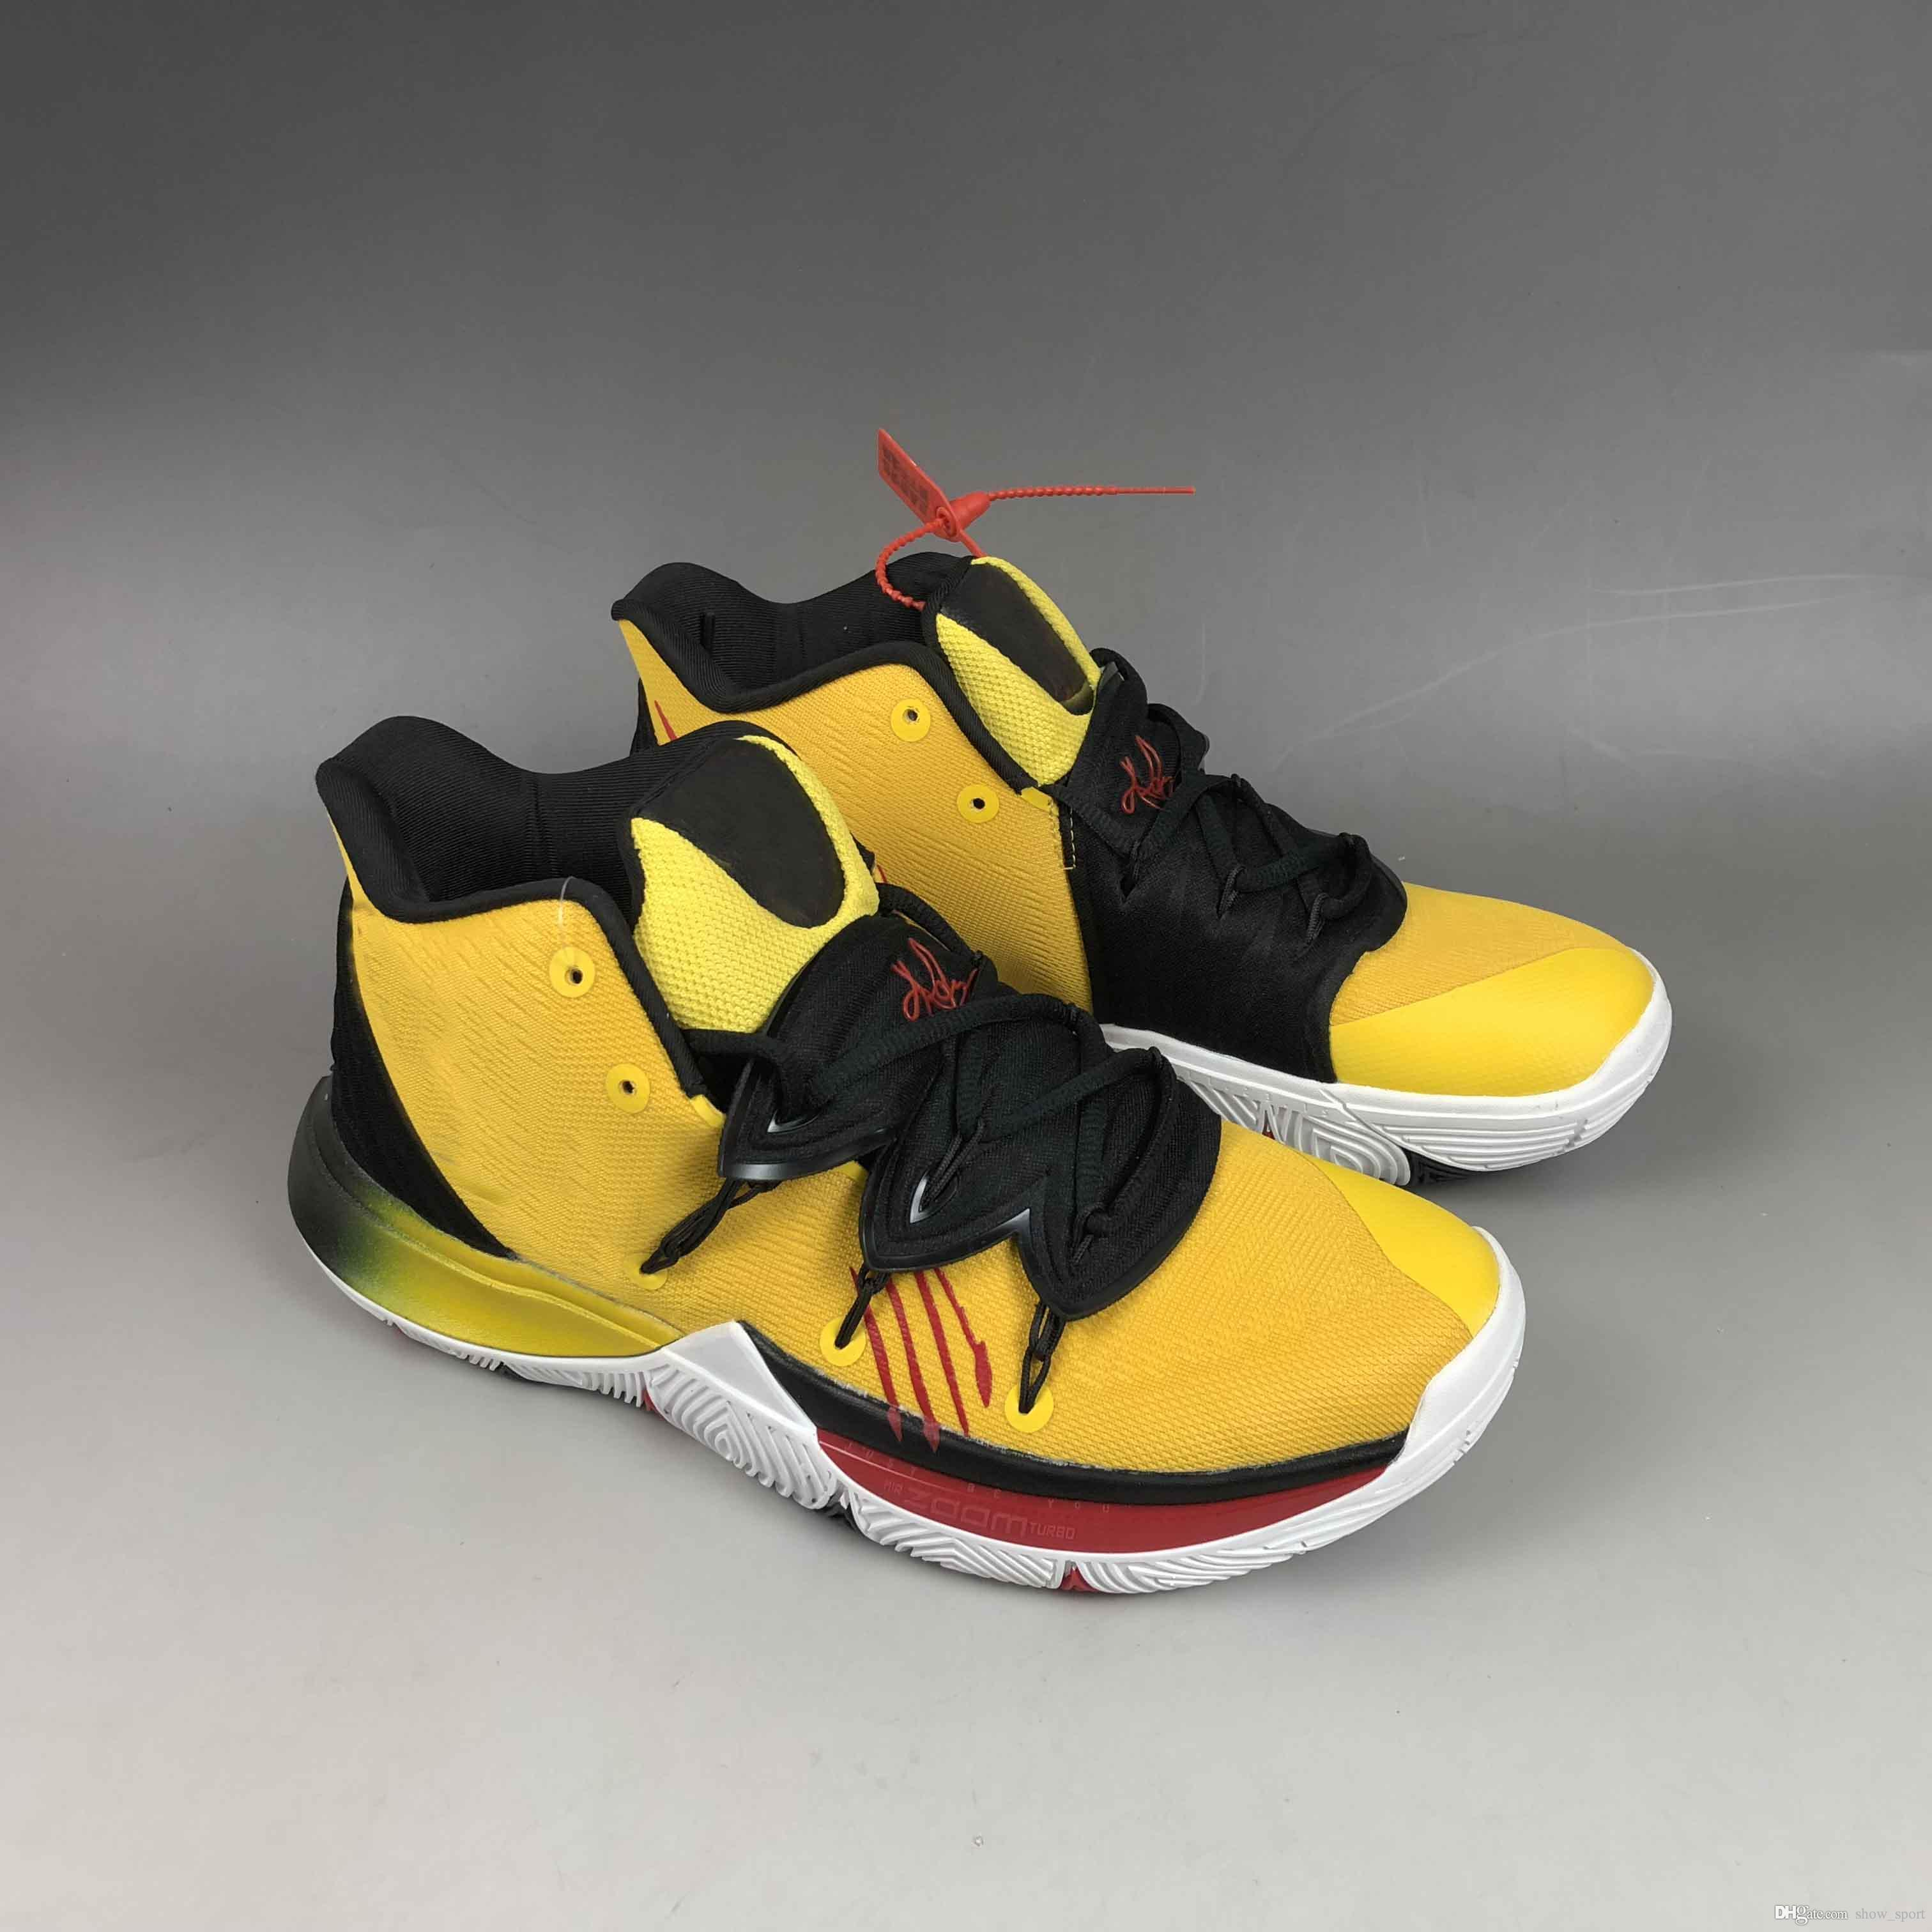 8ddd342e2880 2019 New Limited Kyrie Black Magic 5 V Mens Basketball Shoes Uncle Drew 5S  Zoom Sport Training Sneakers High Ankle Size 40 46 Cp3 Shoes Kids Sneakers  From ...